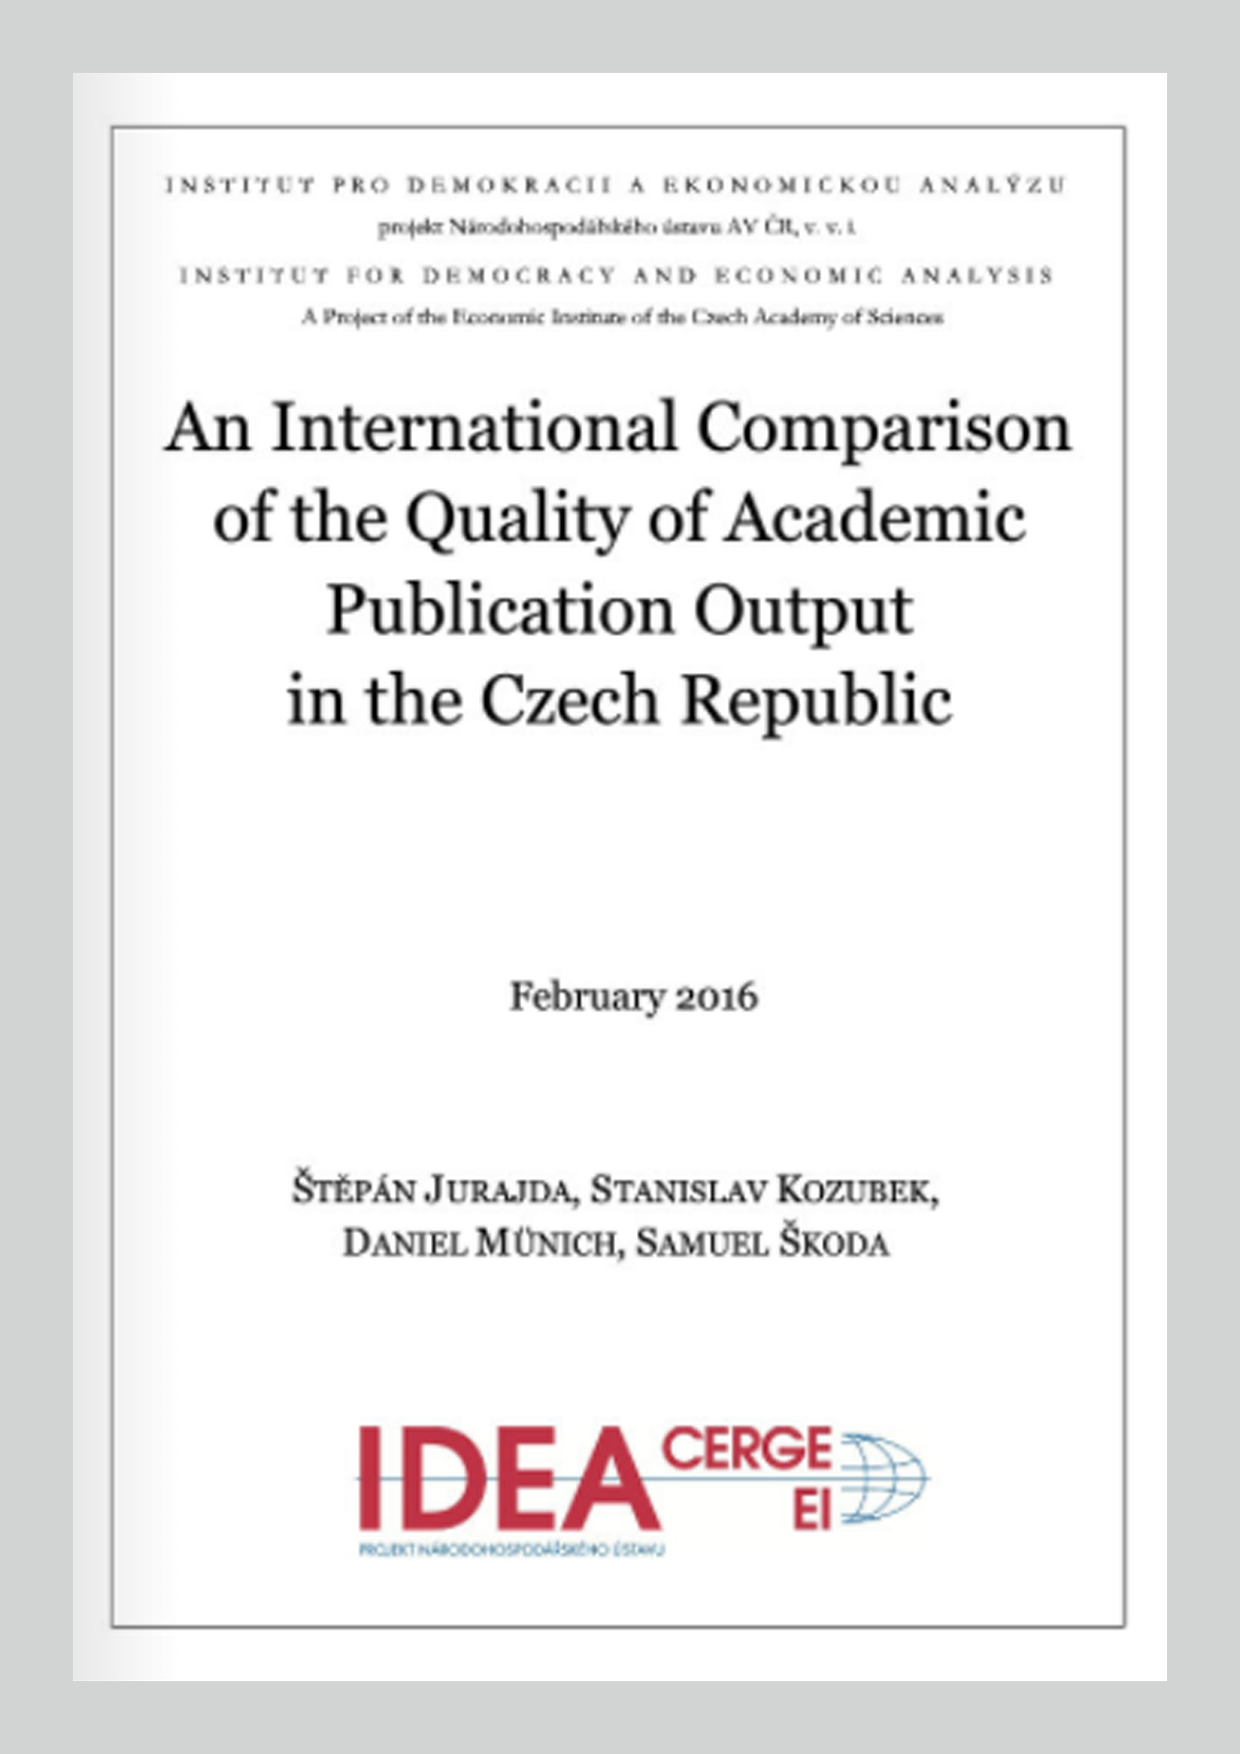 An International Comparison of the Quality of Academic Publication Output in the Czech Republic